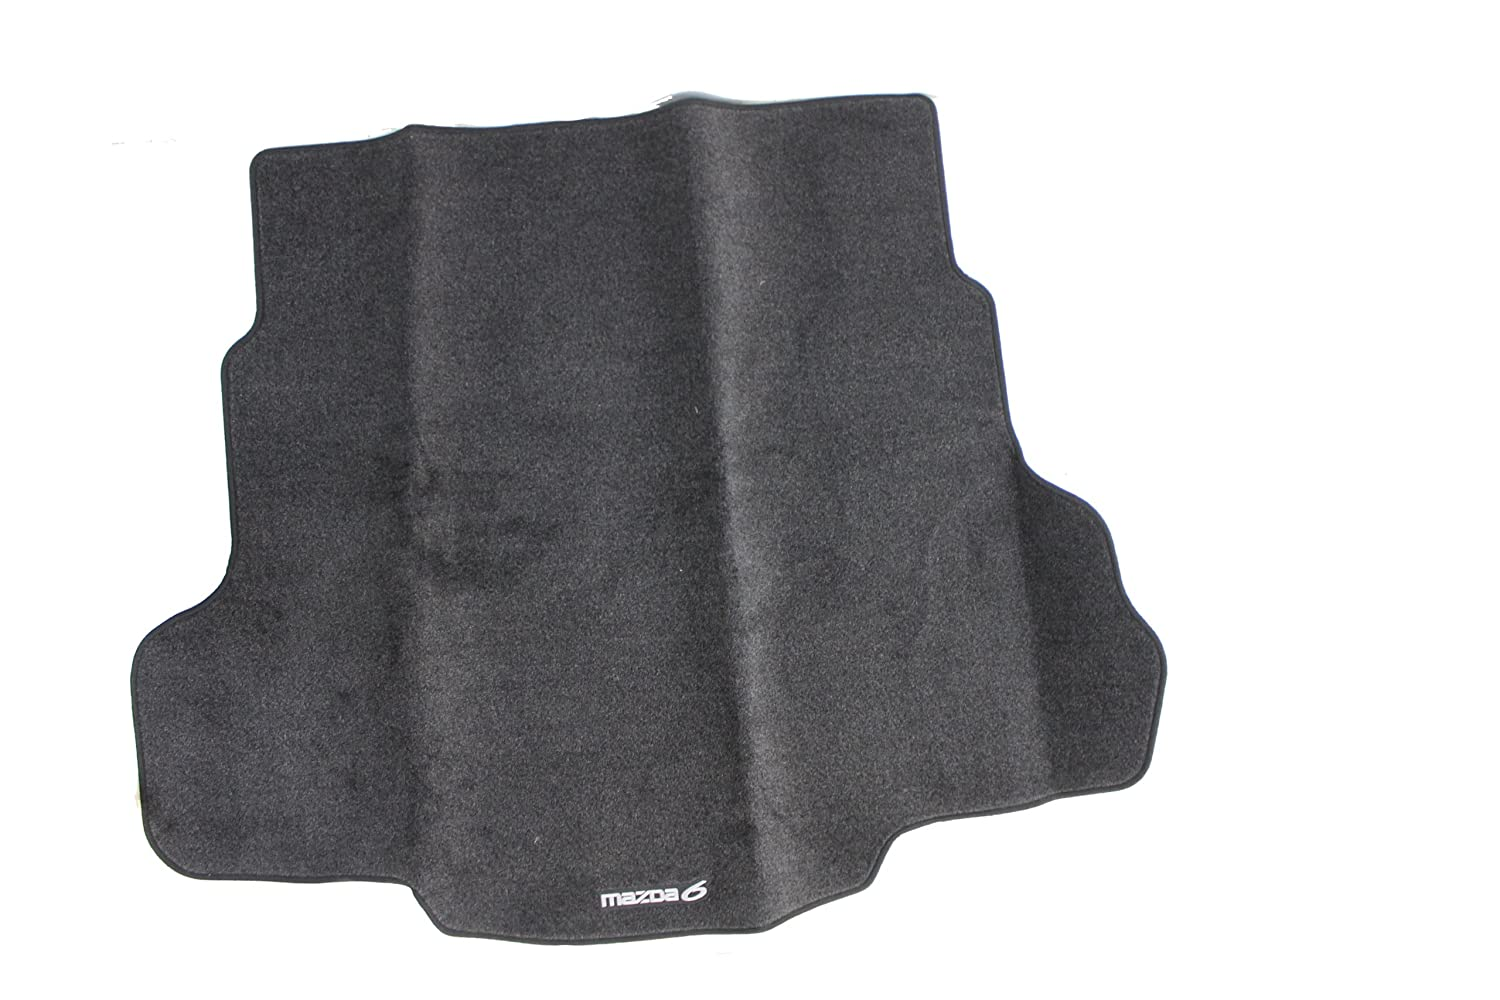 Mazda Genuine Accessories 0000-8B-H52 Carpet Cargo Mat